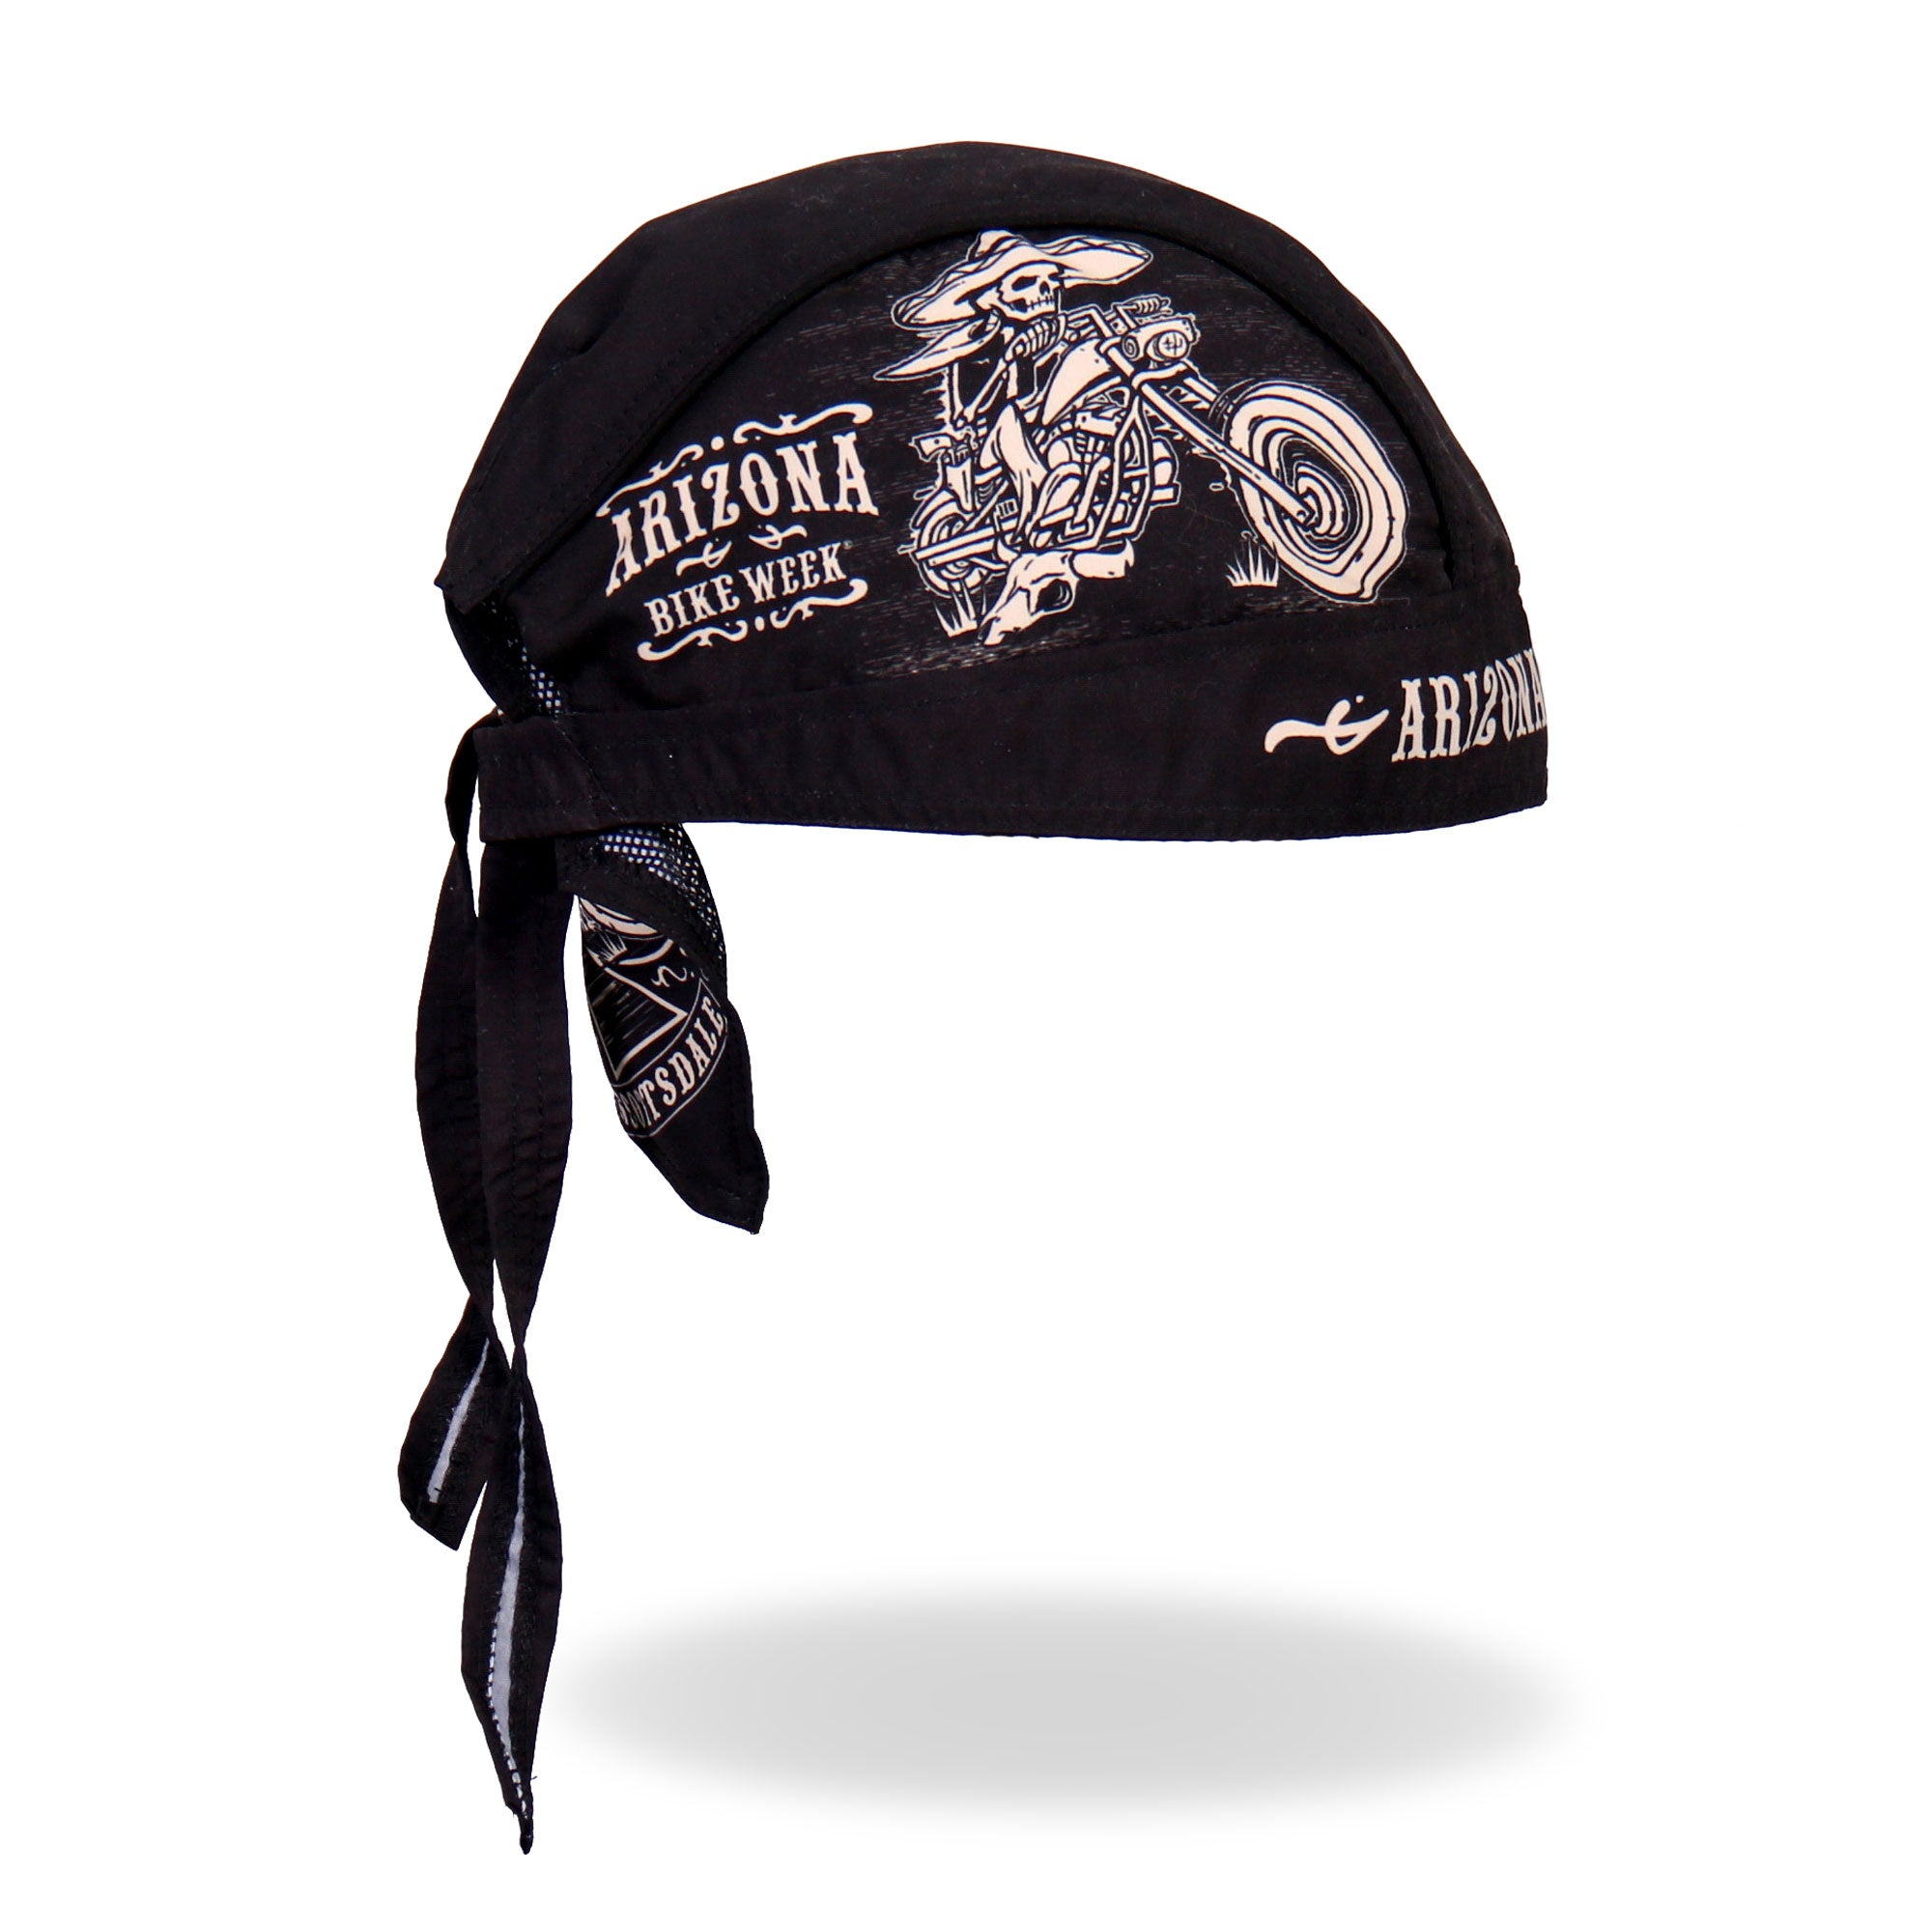 Official Arizona Bike week Mexicali Head Wrap